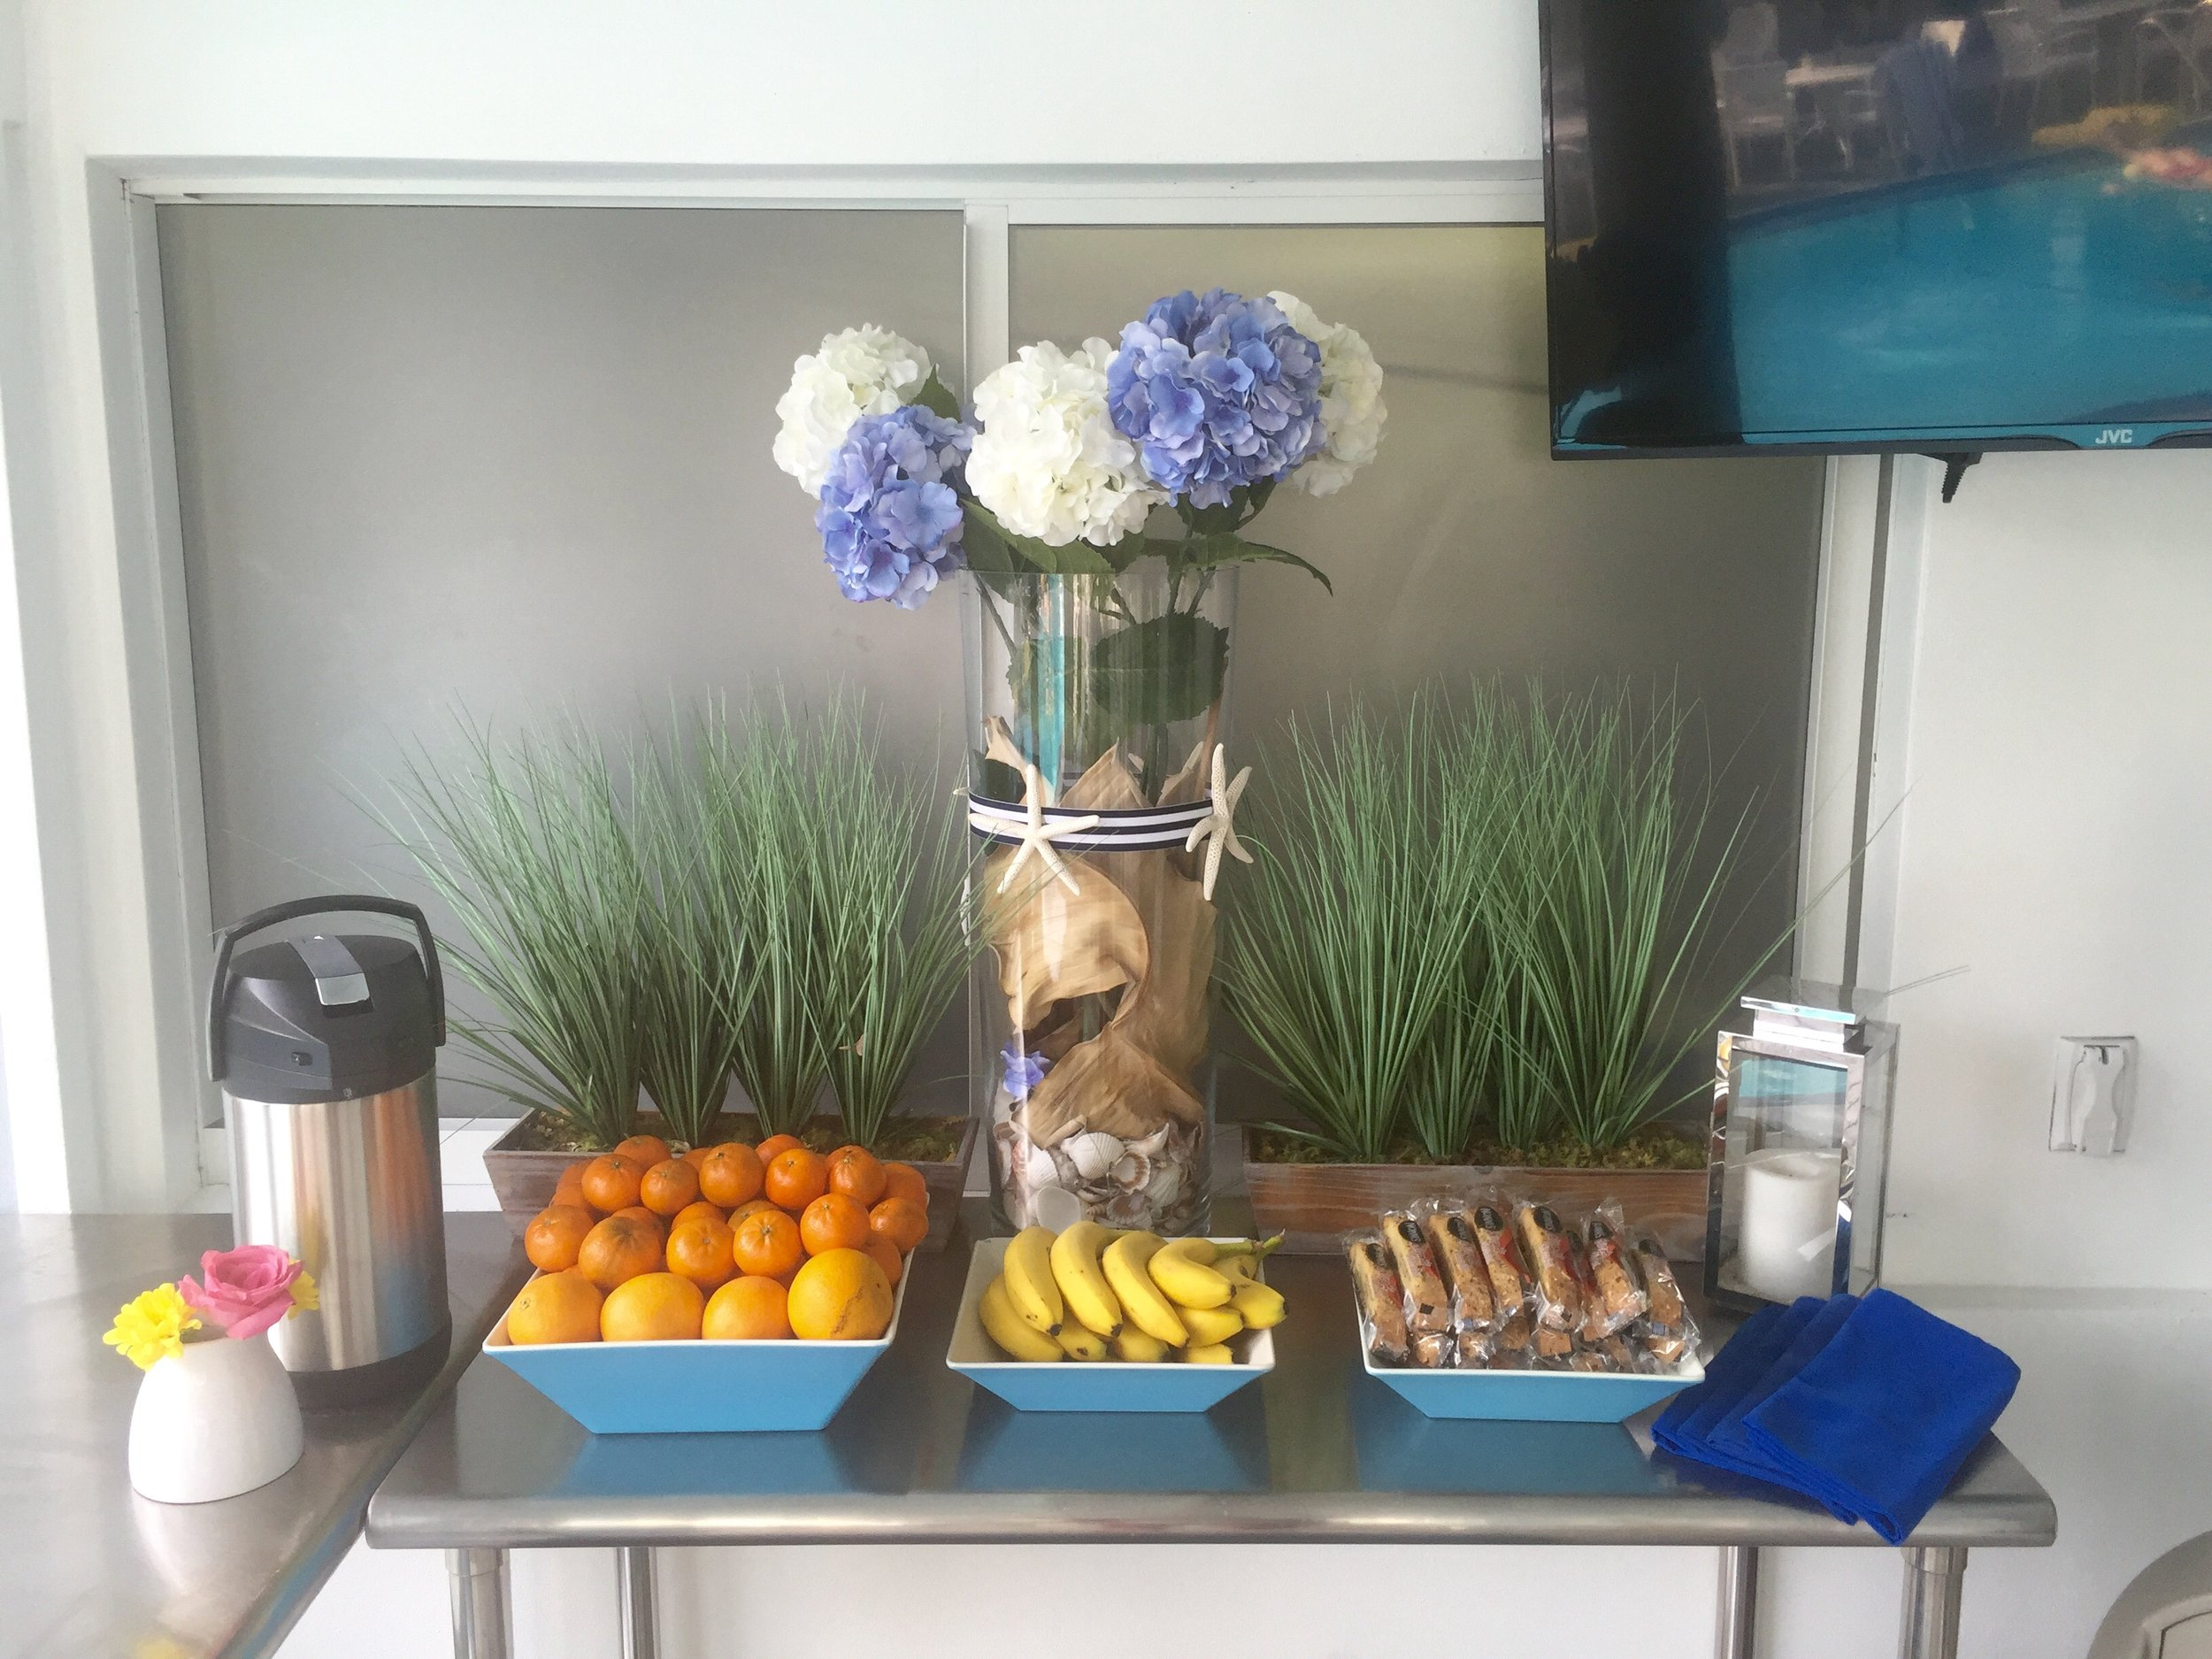 Refreshments - We provide complimentary fresh roasted Colombian coffee poolside everyday Assorted yogurts, biscotti and fresh fruits are available Monday to Friday.